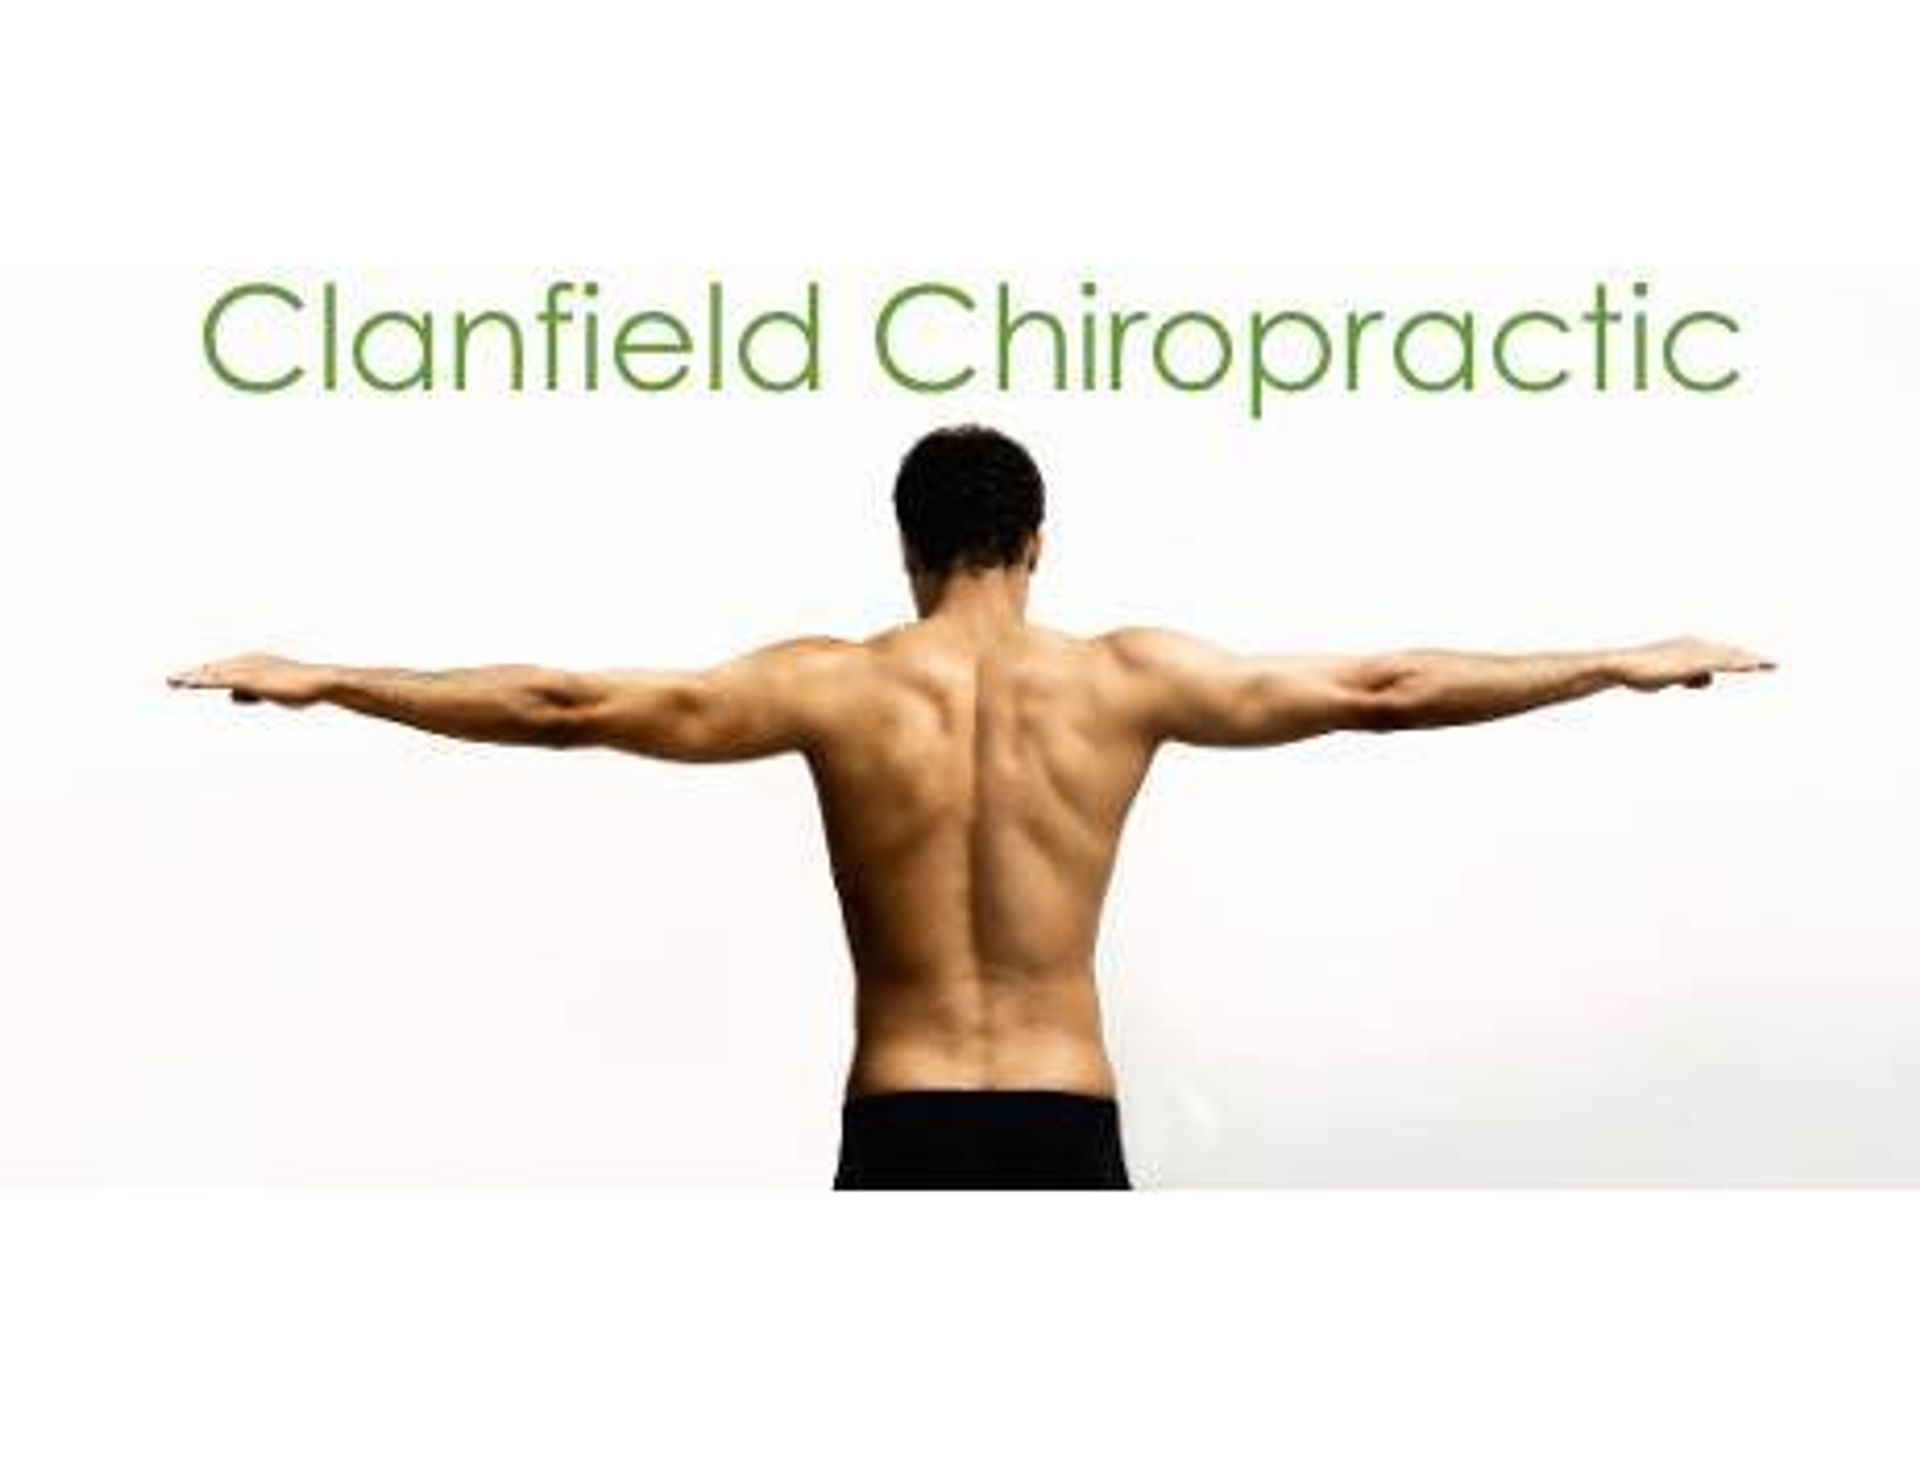 The Clanfield Chiropractic Clinic is delighted to welcome Daniel Ebrey